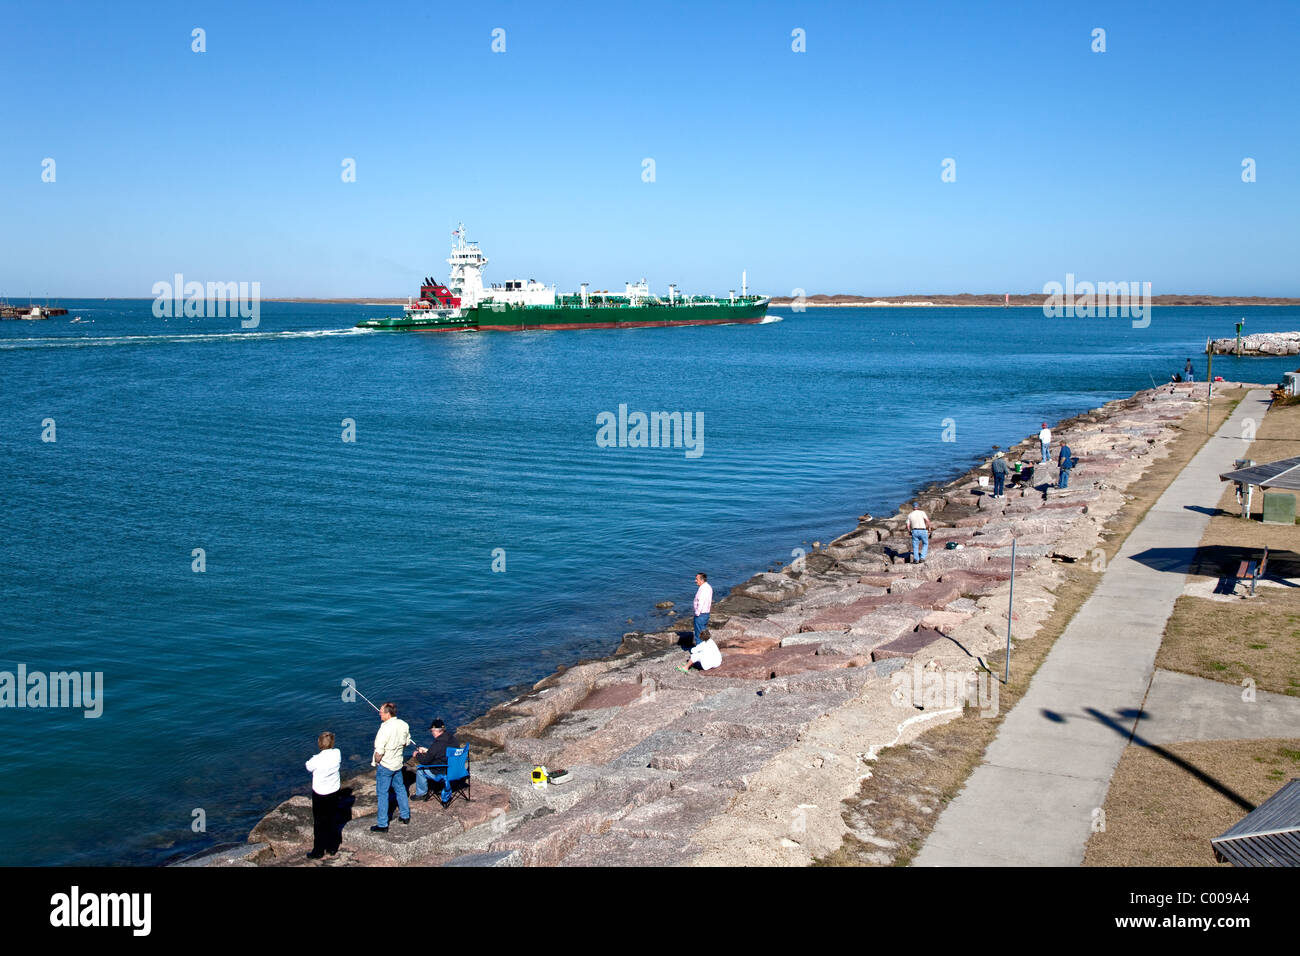 Roberts Point Park, Corpus Christi shipping channel. - Stock Image